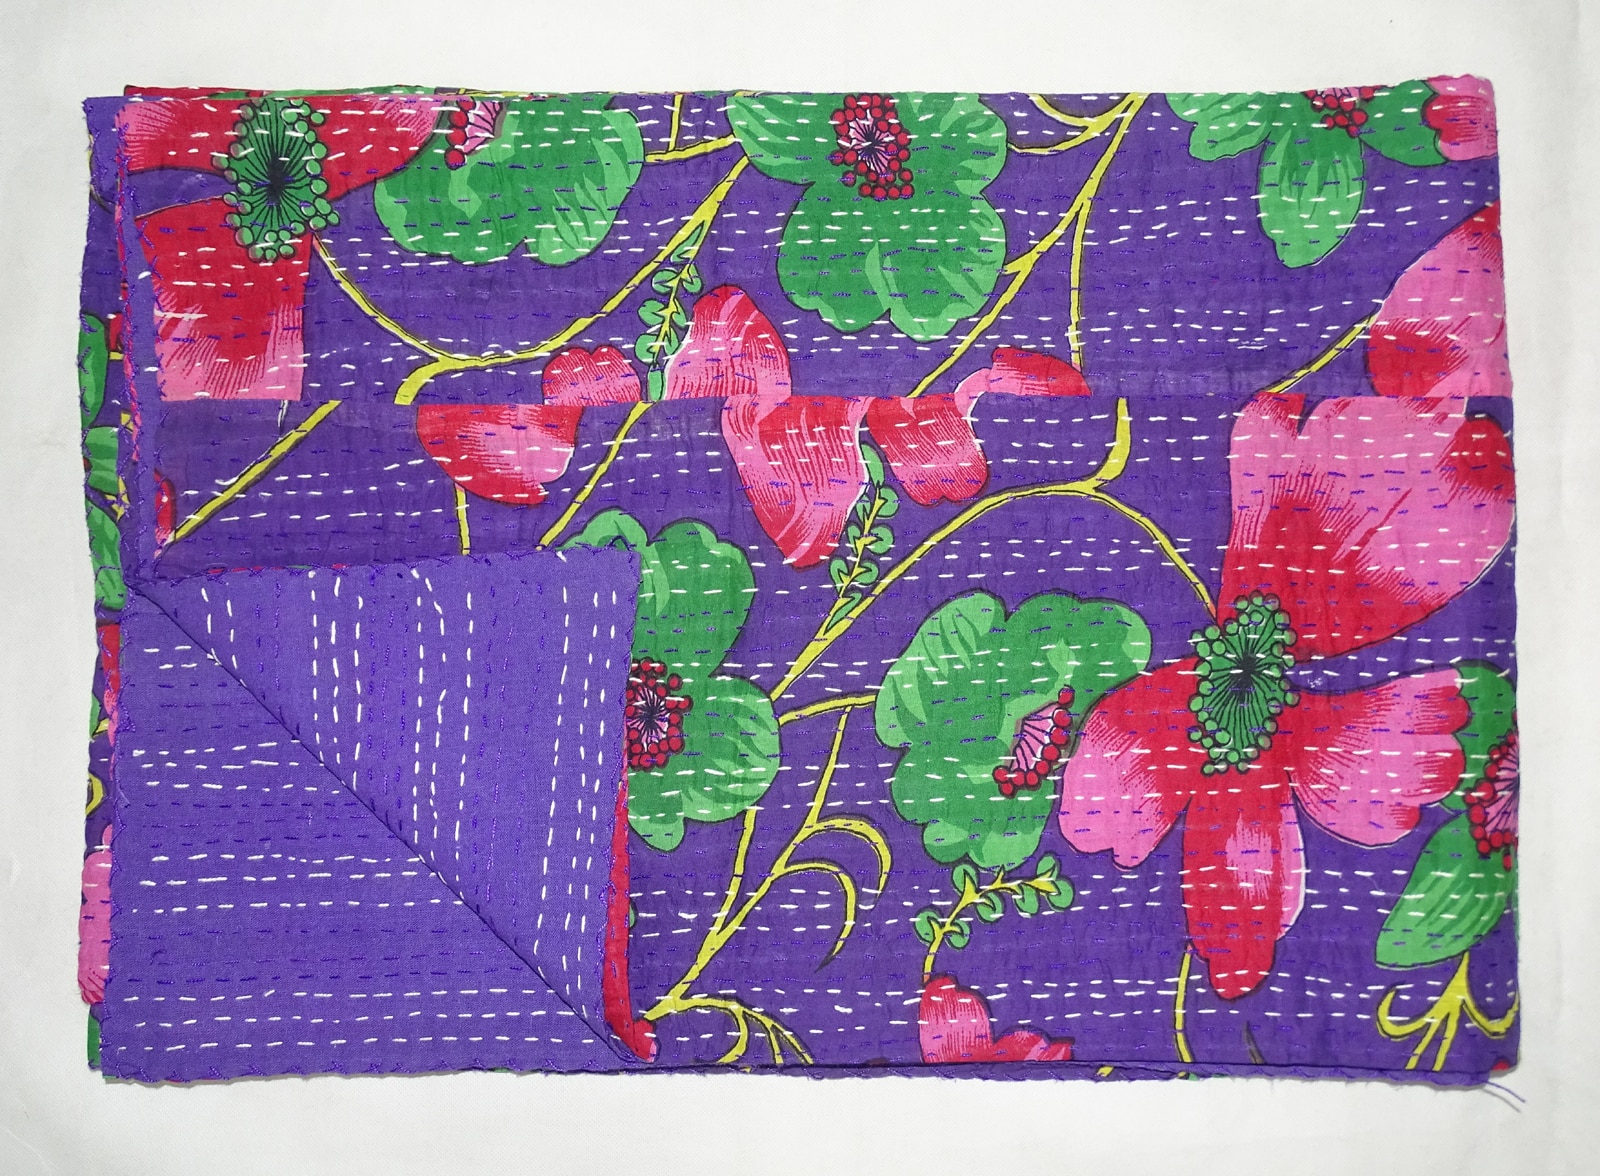 Indian Kantha Quilt   Indian Kantha Quilt Cotton Twin Size Bedsheet Handmade Floral Purple Bedspread Throw   Size:- 60x90.Inch (Twin) Material:- Cotton  Pattern:- Floral Color:- Purple